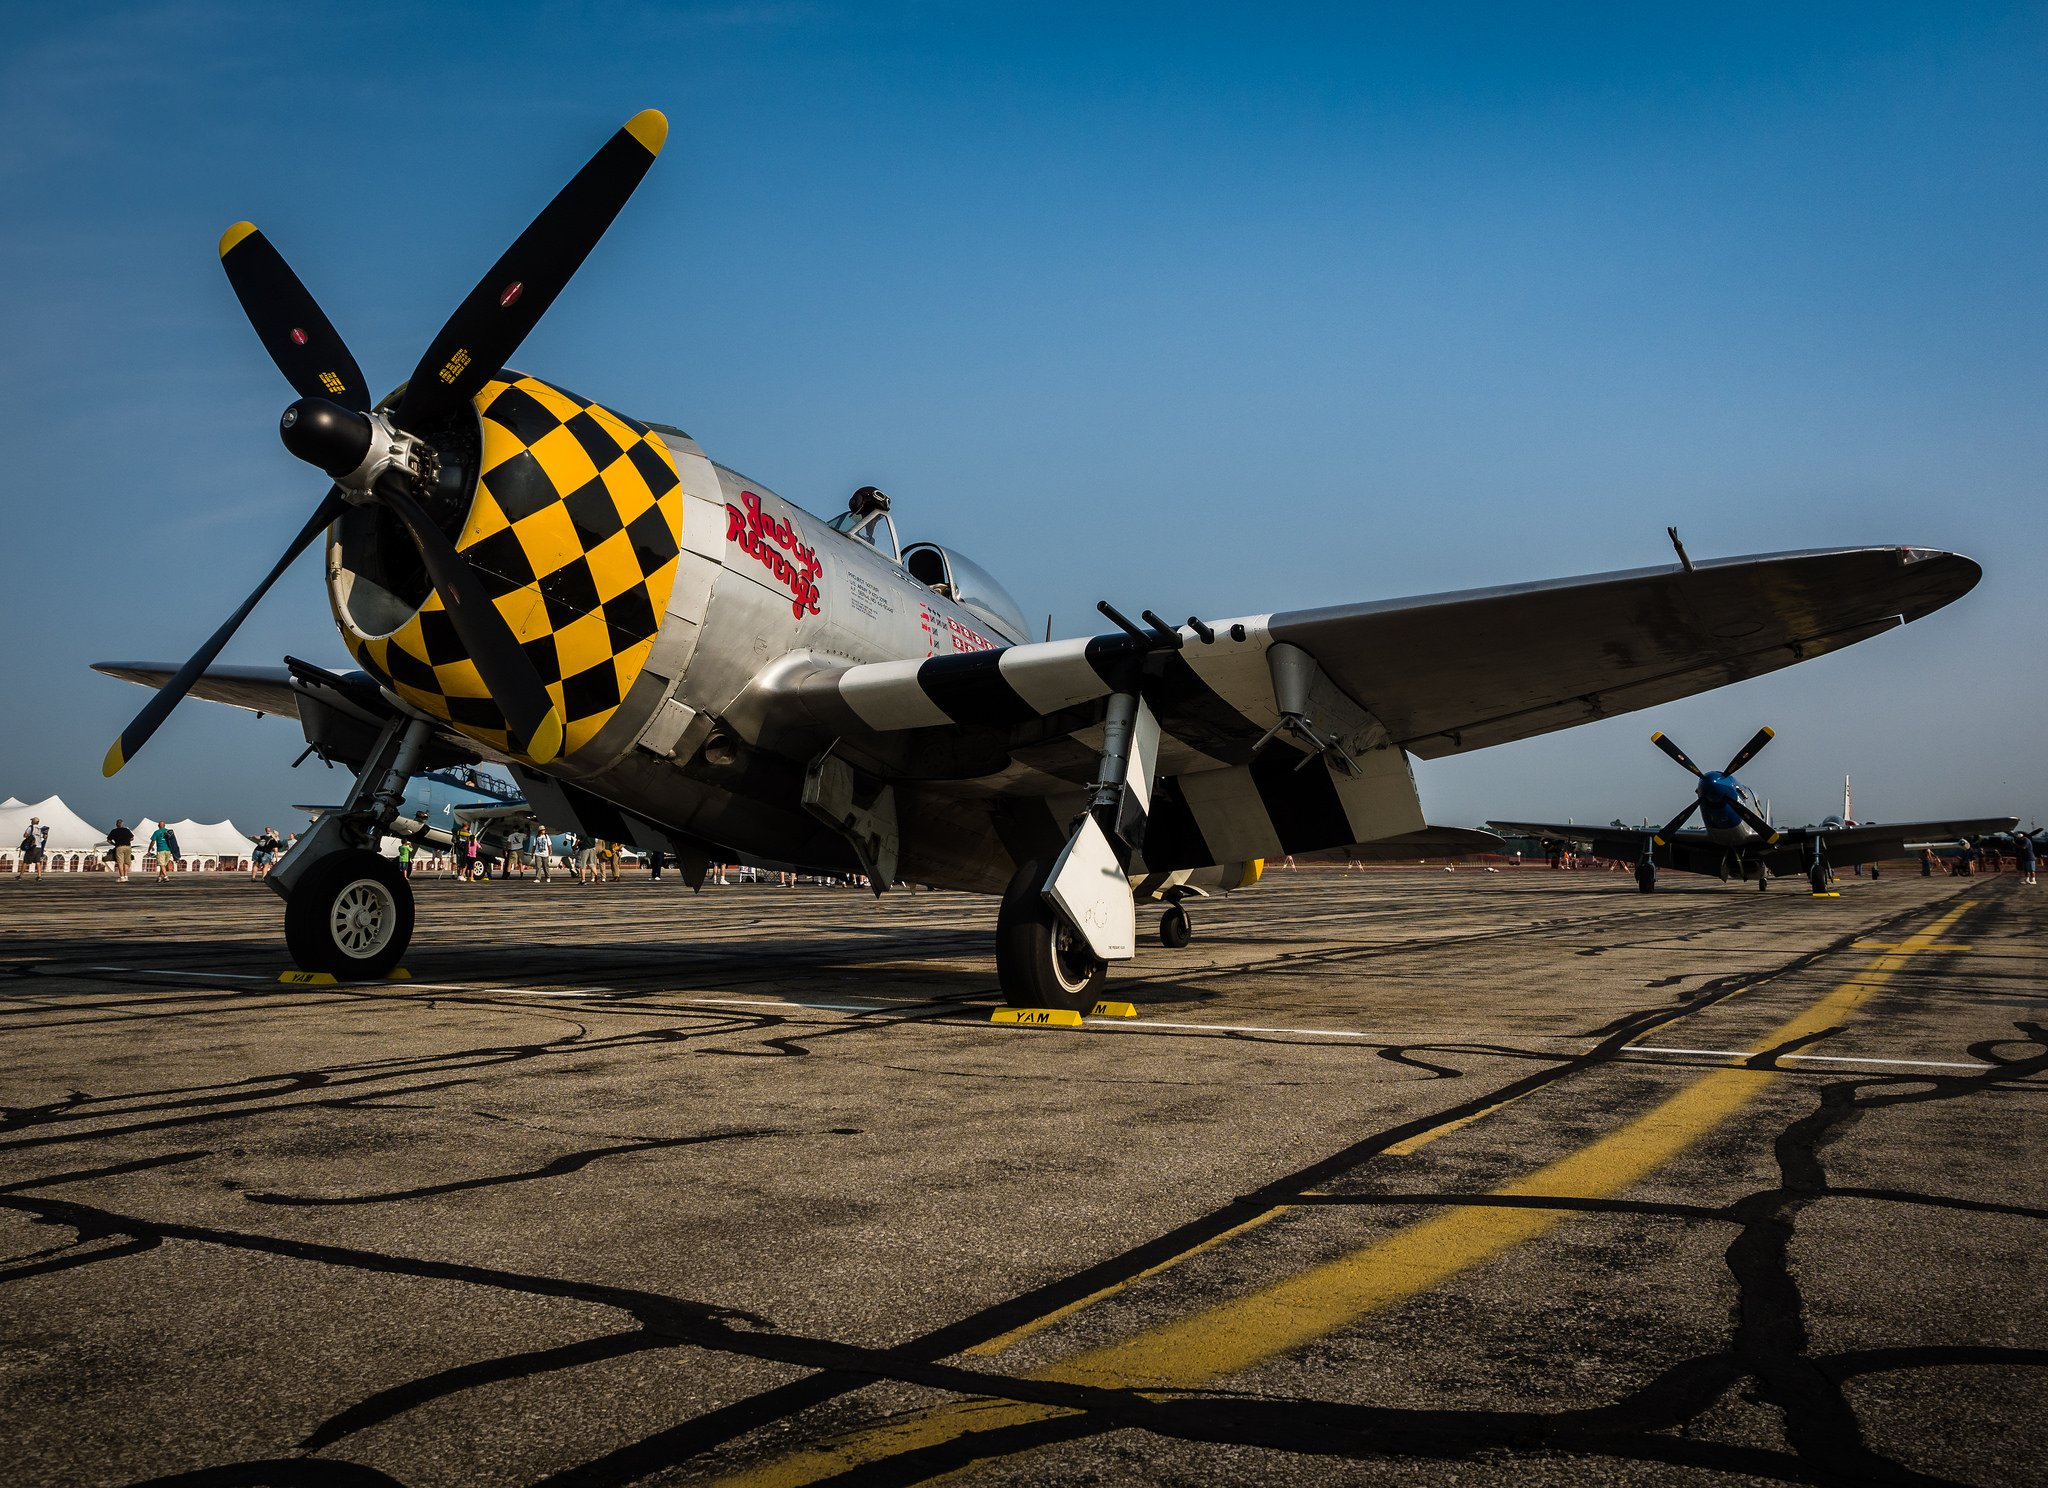 P 47 Thunderbolt Wallpaper Aeroplane aircraft air...